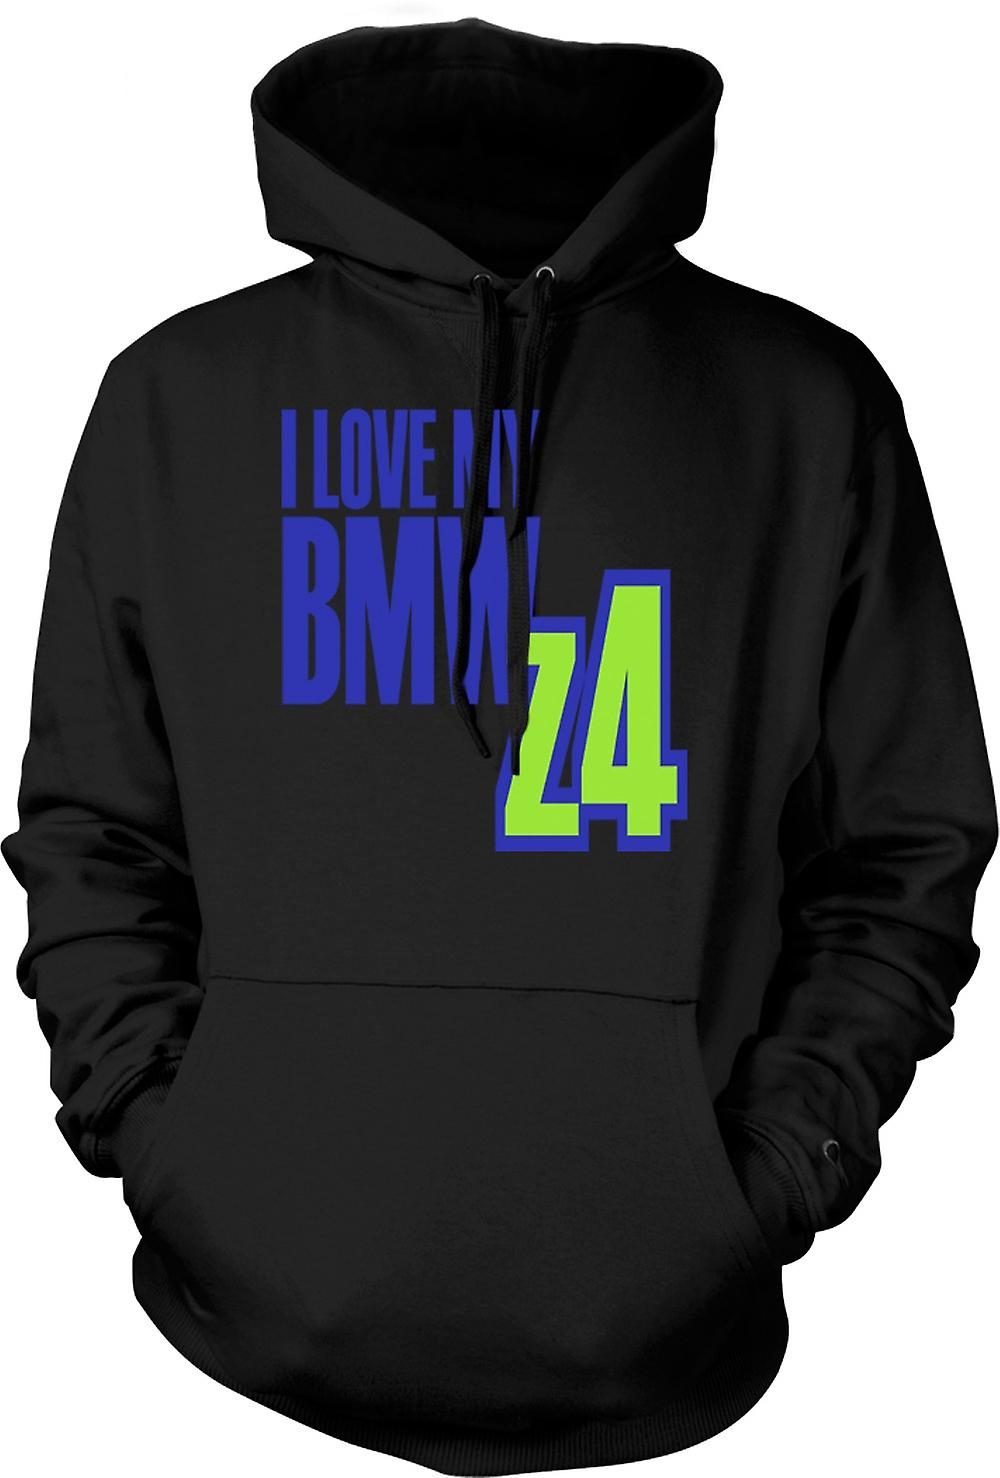 Kids Hoodie - I Love My BMW Z4 - Car Enthusiast